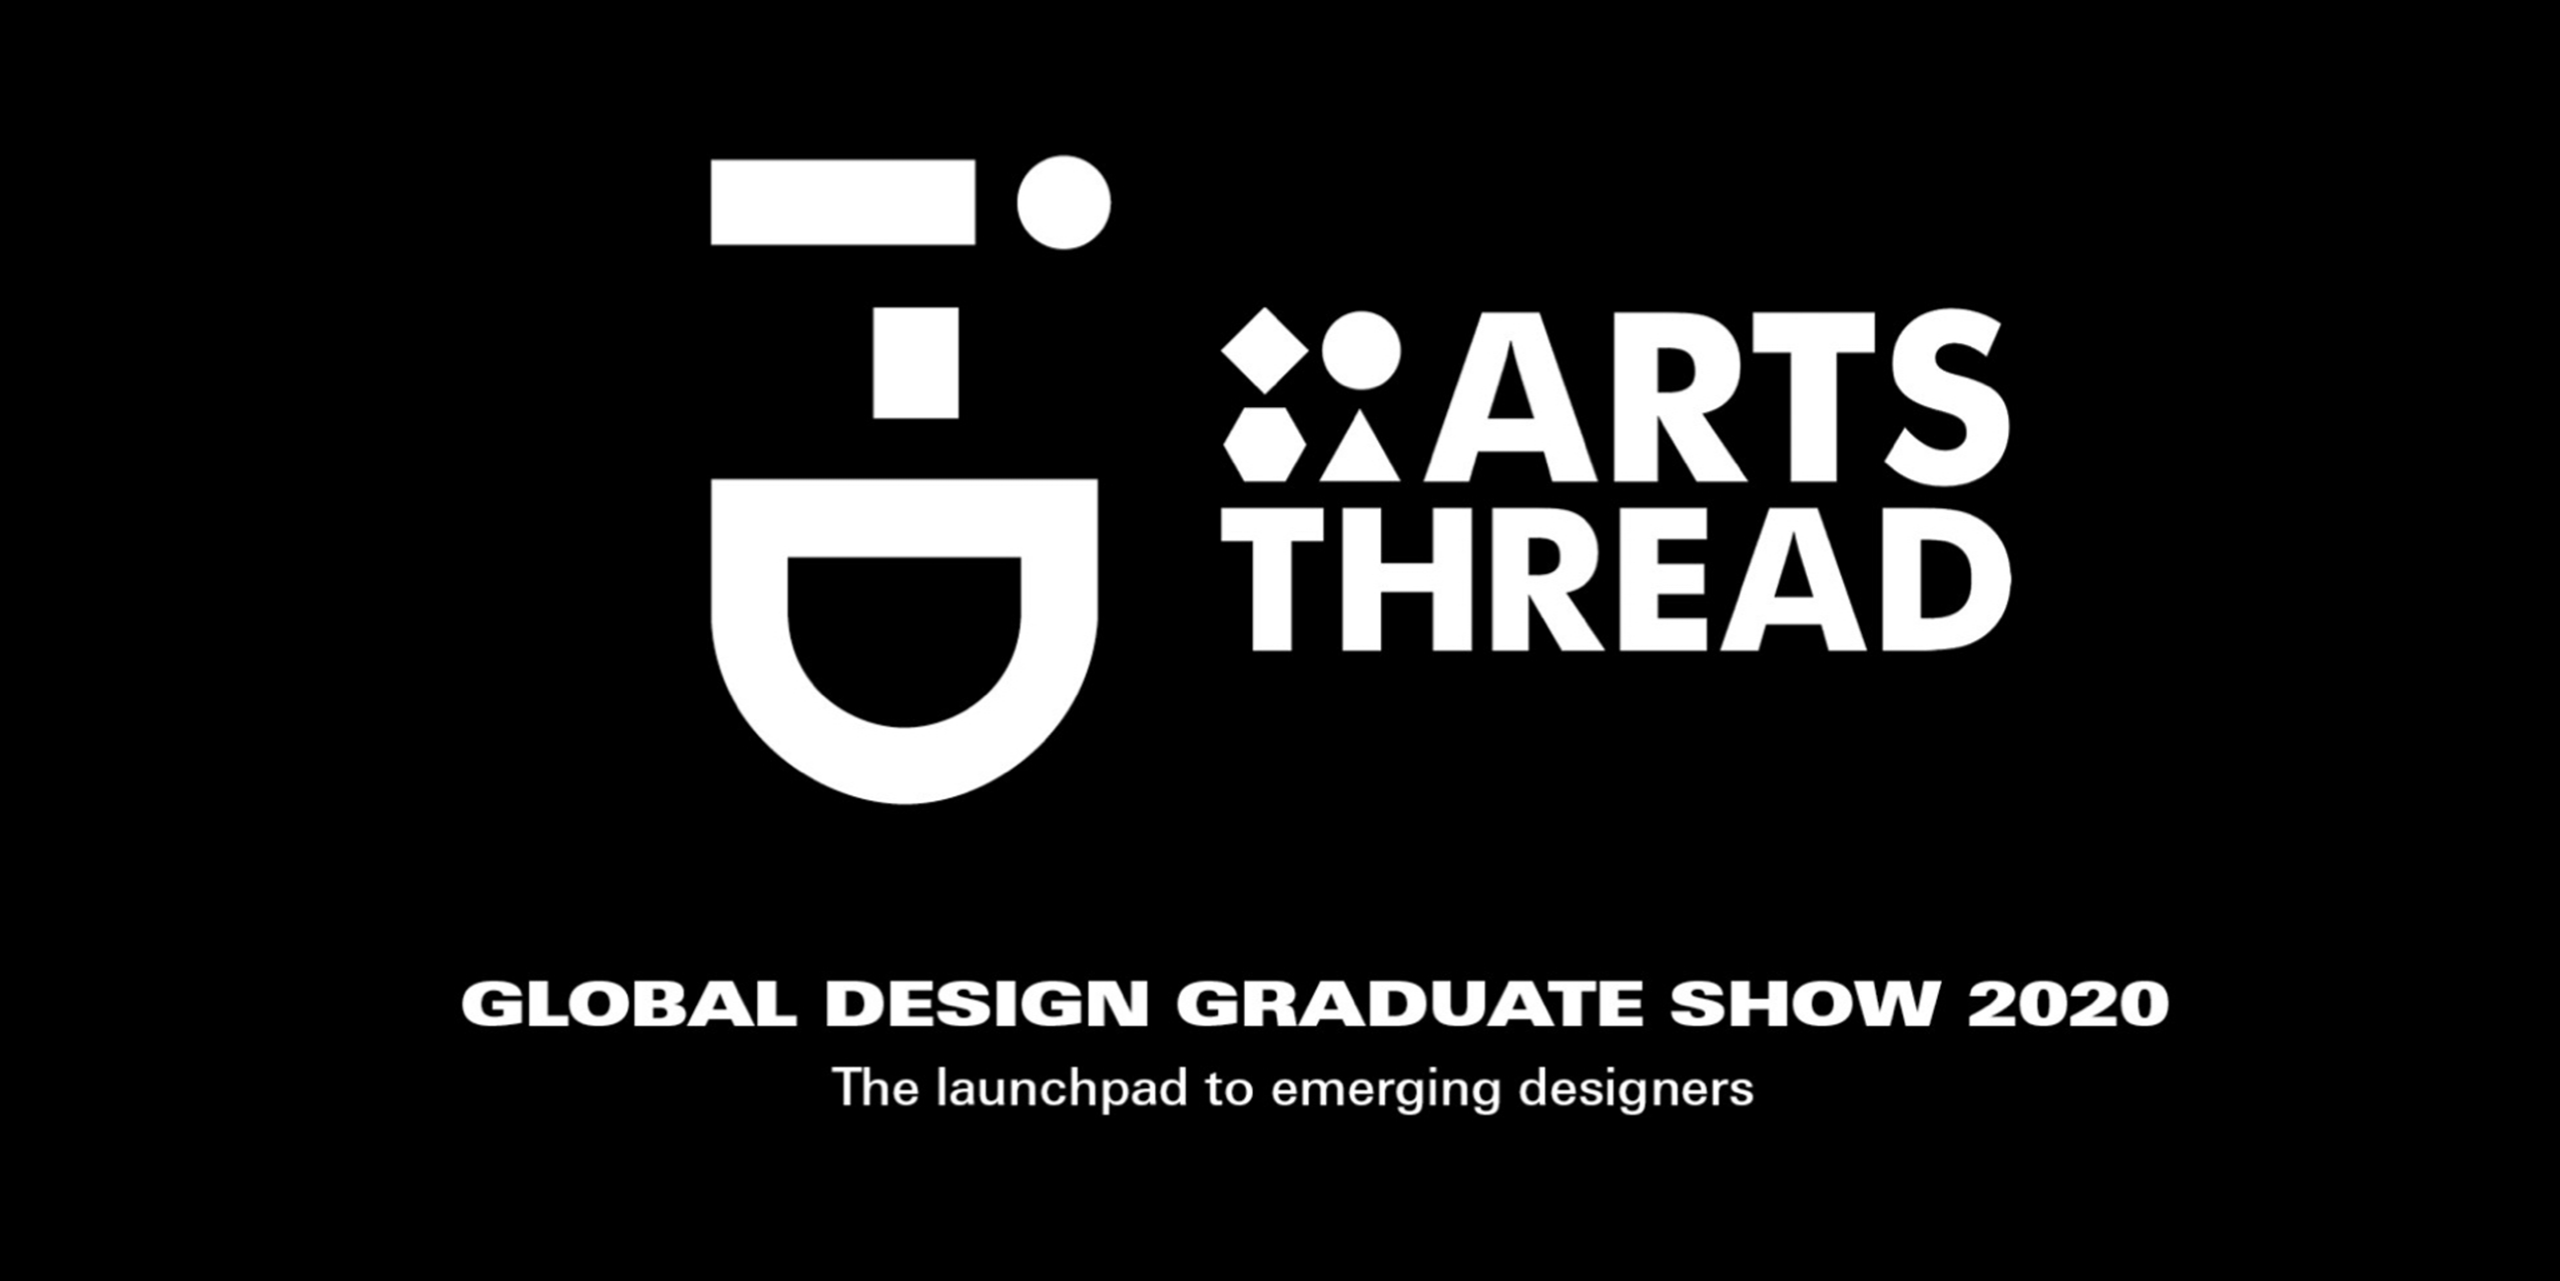 Artsthread Graduate Awards 2020